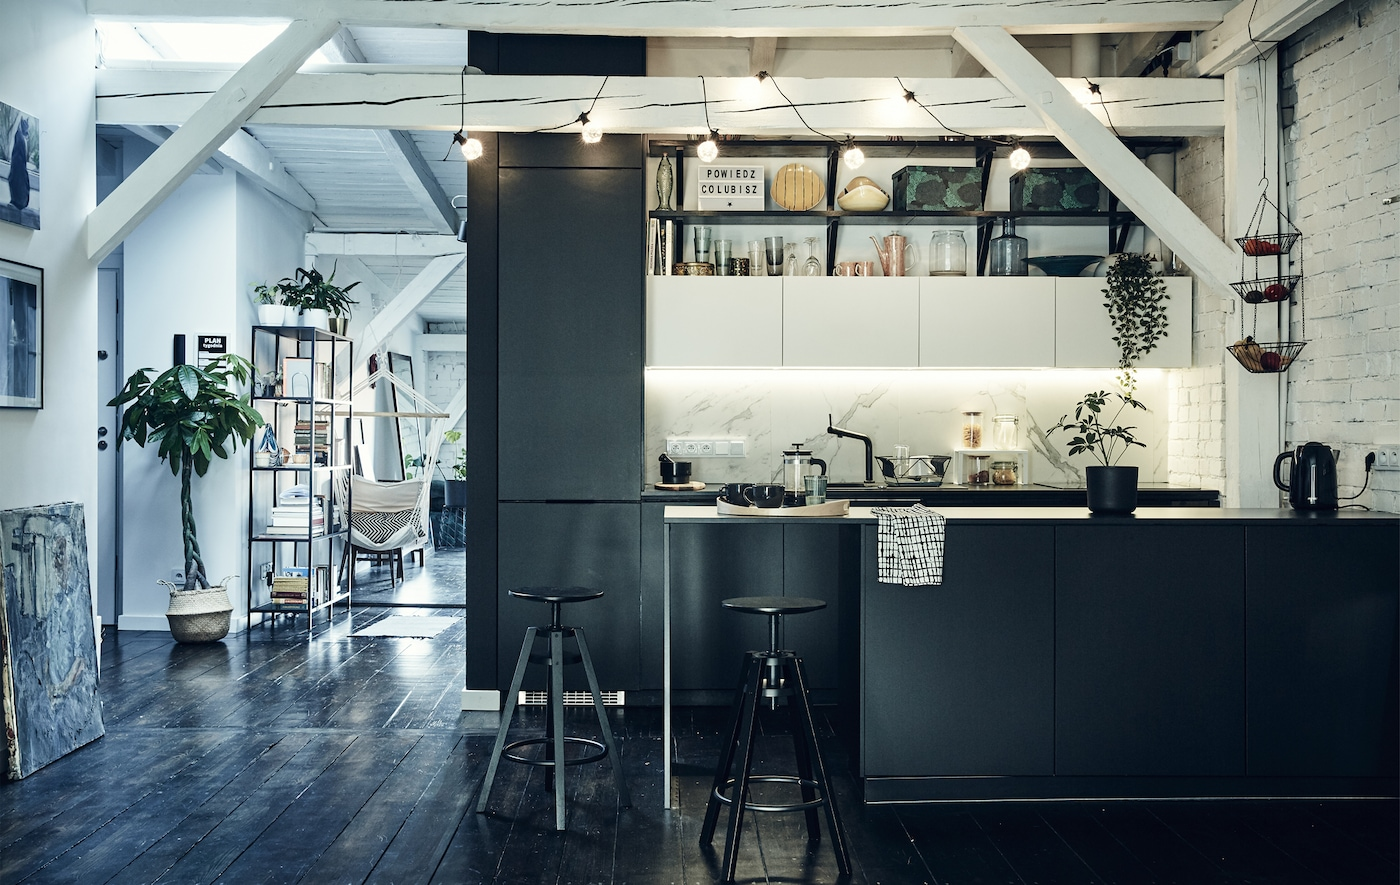 A black kitchen in an open-plan space with white beams across the ceiling and dark wooden floors.